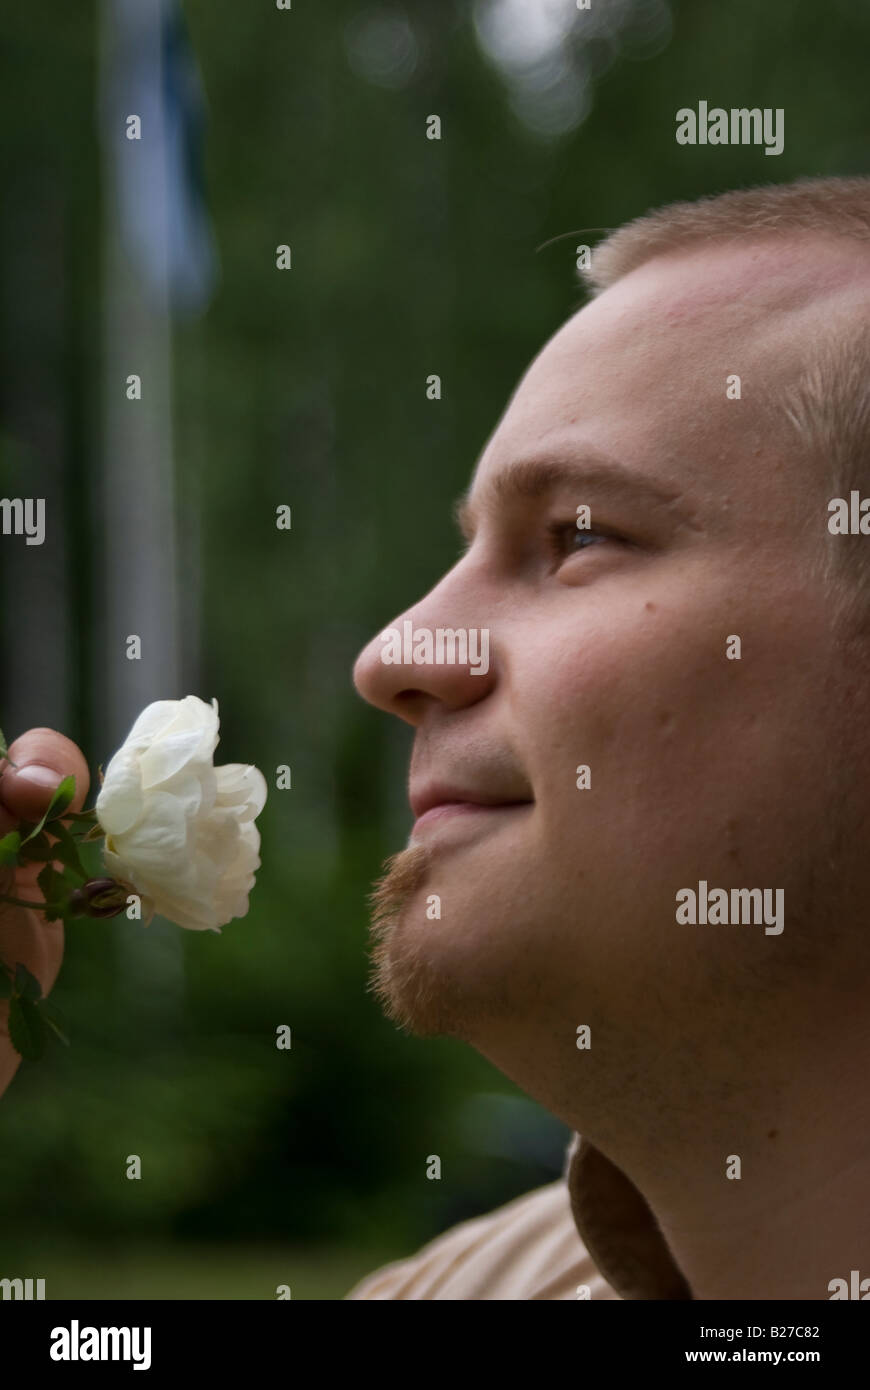 A man smells the scent of a white rose - Stock Image